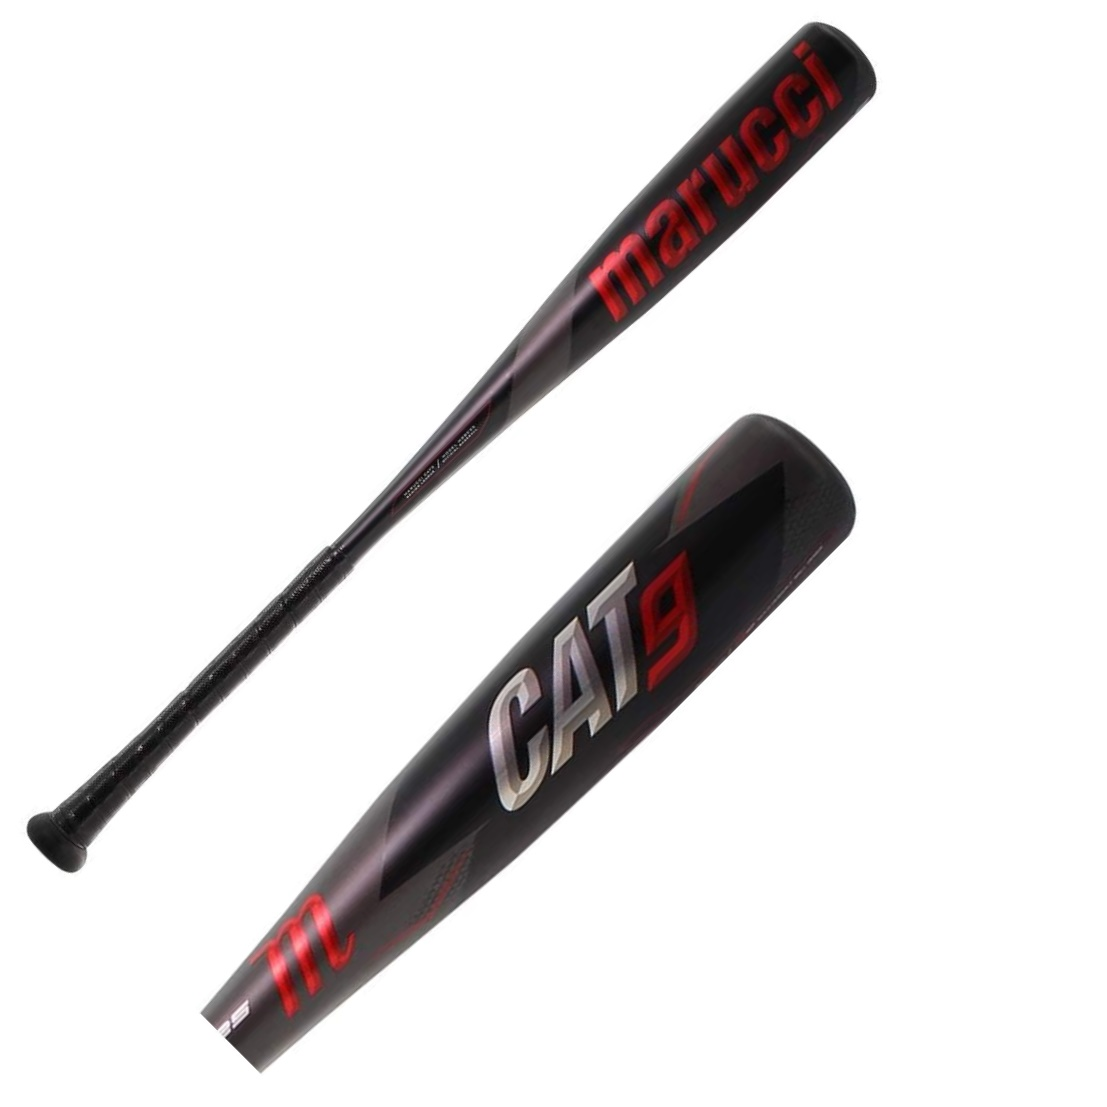 marucci-cat-9-8-usssa-baseball-bat-31-in-23-oz MSBC98-3123 Marucci  Utilizing a three-stage thermal treatment process our new AZR alloy offers